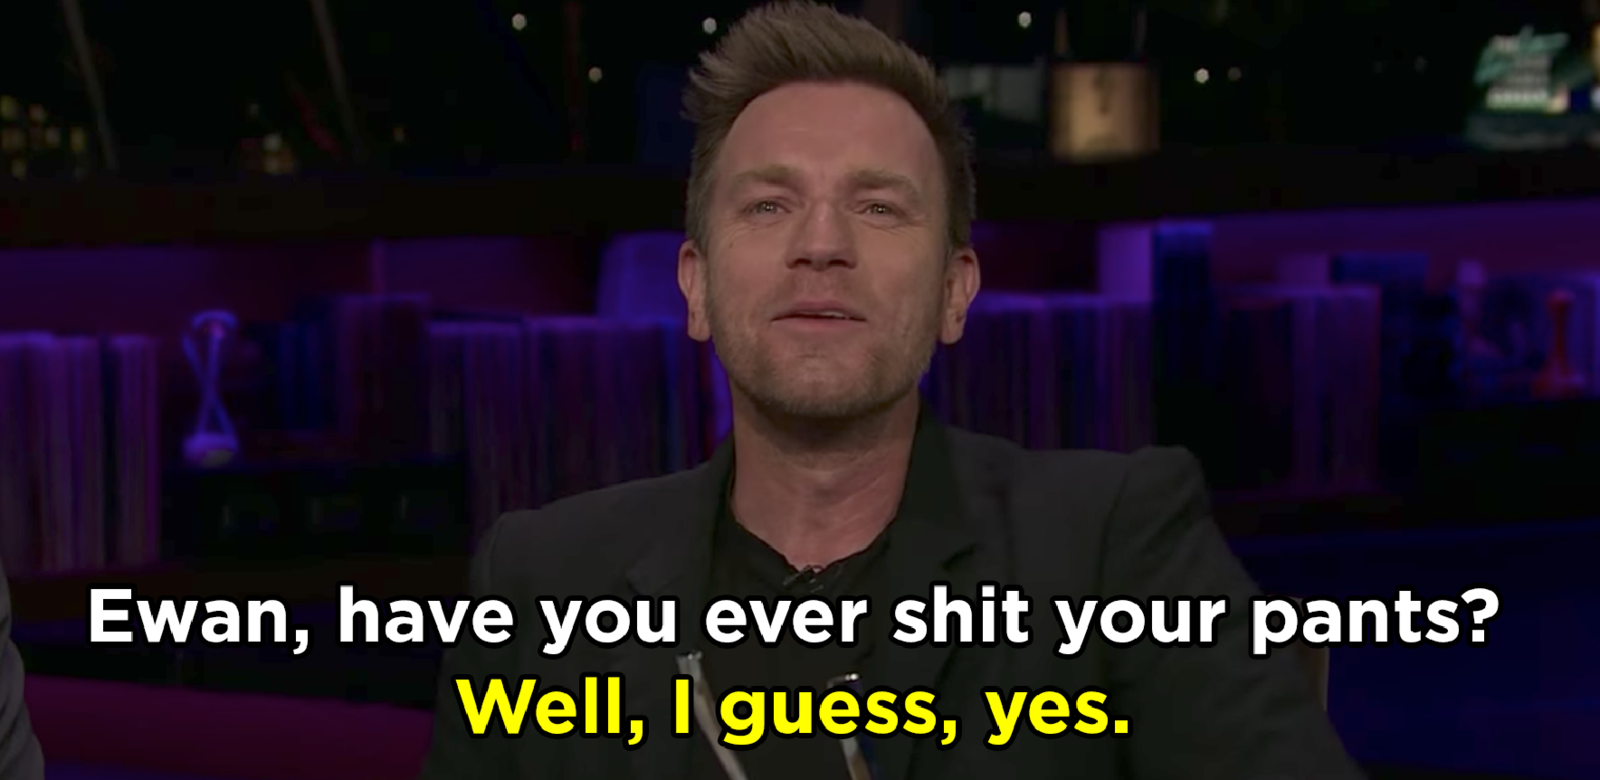 Ewan McGregor saying he's shit his pants